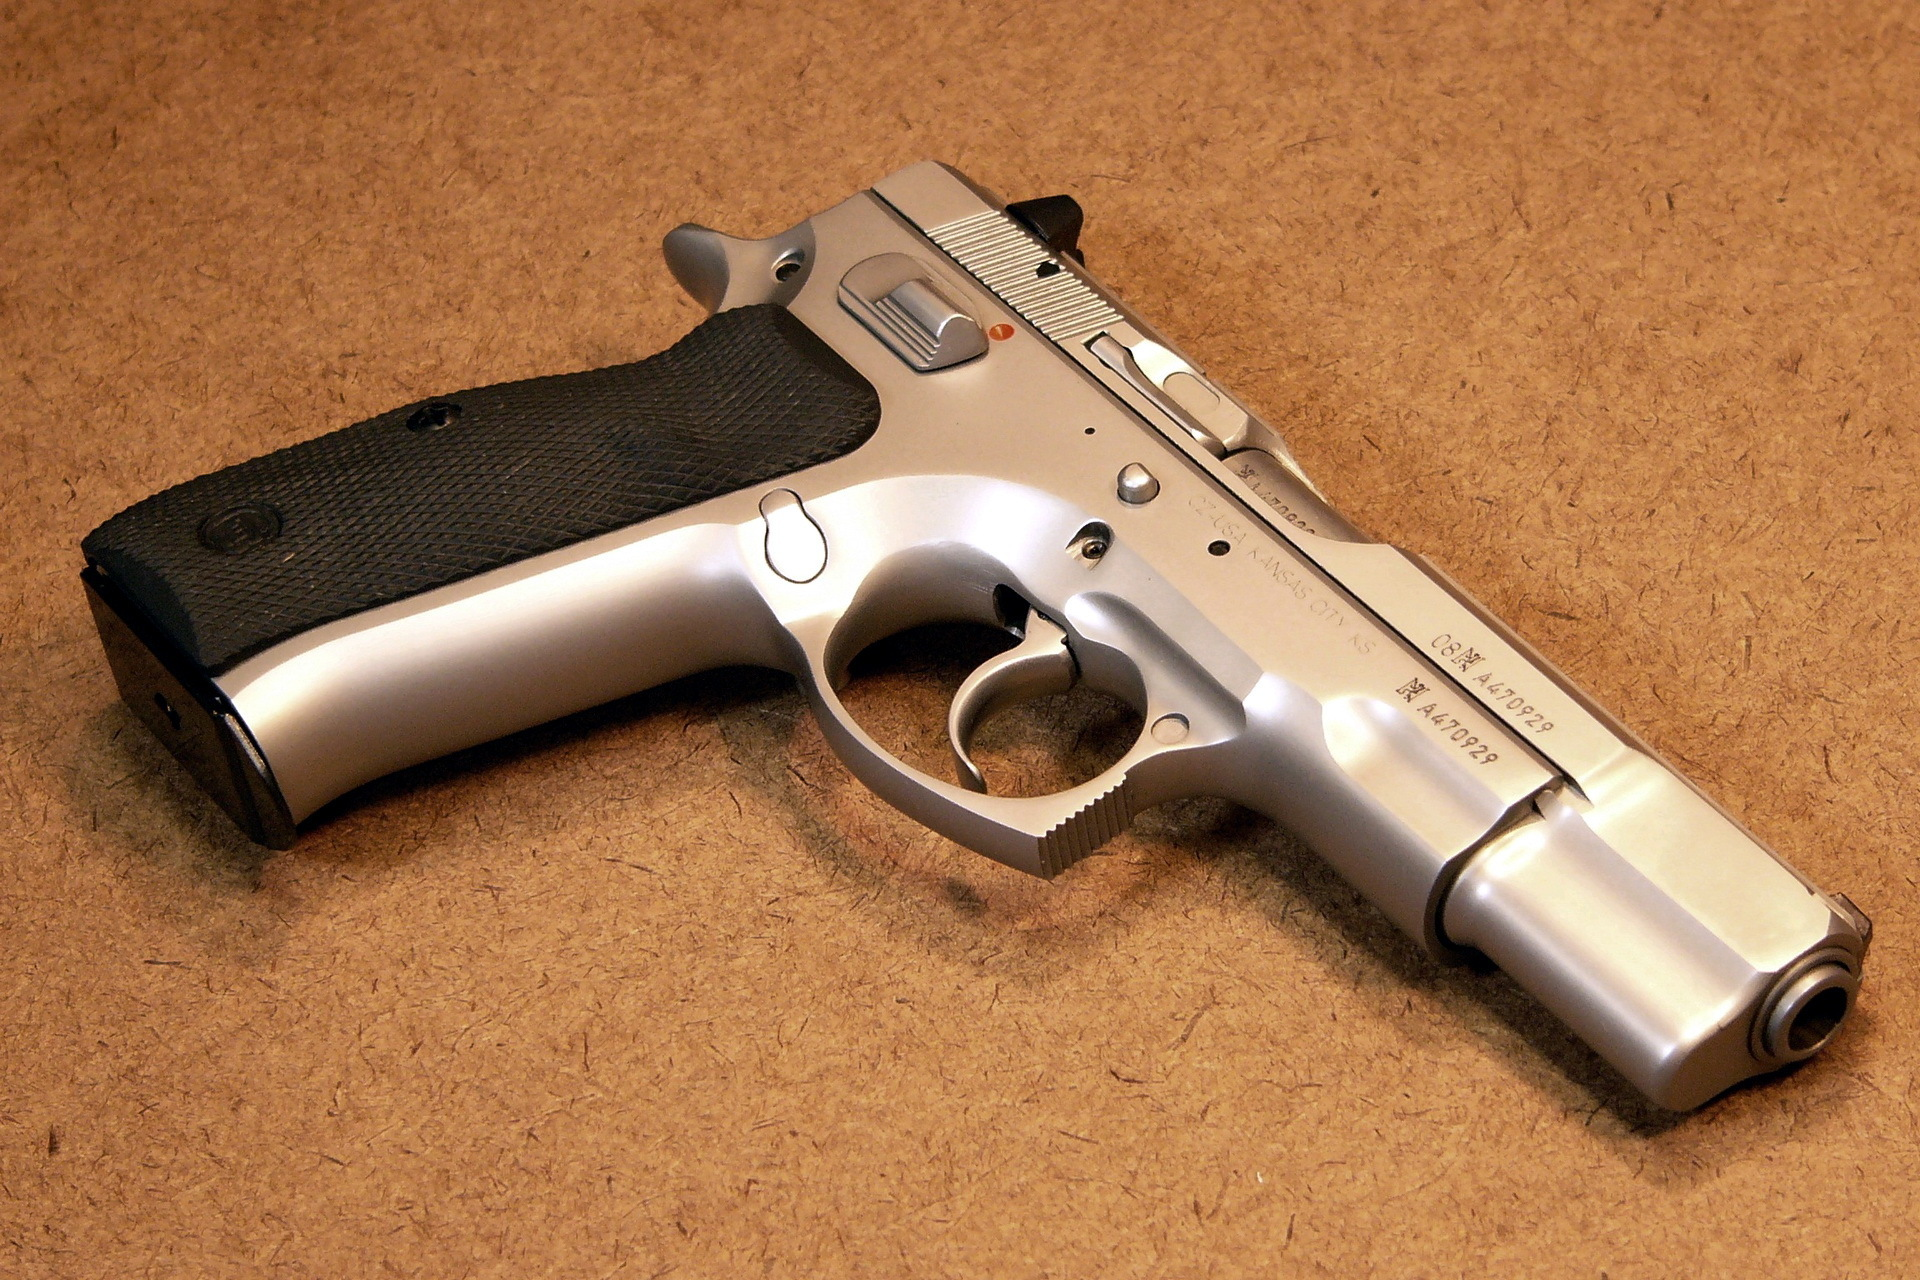 CZ 75 B in bead blasted stainless steel HD Wallpaper Background 1920x1280